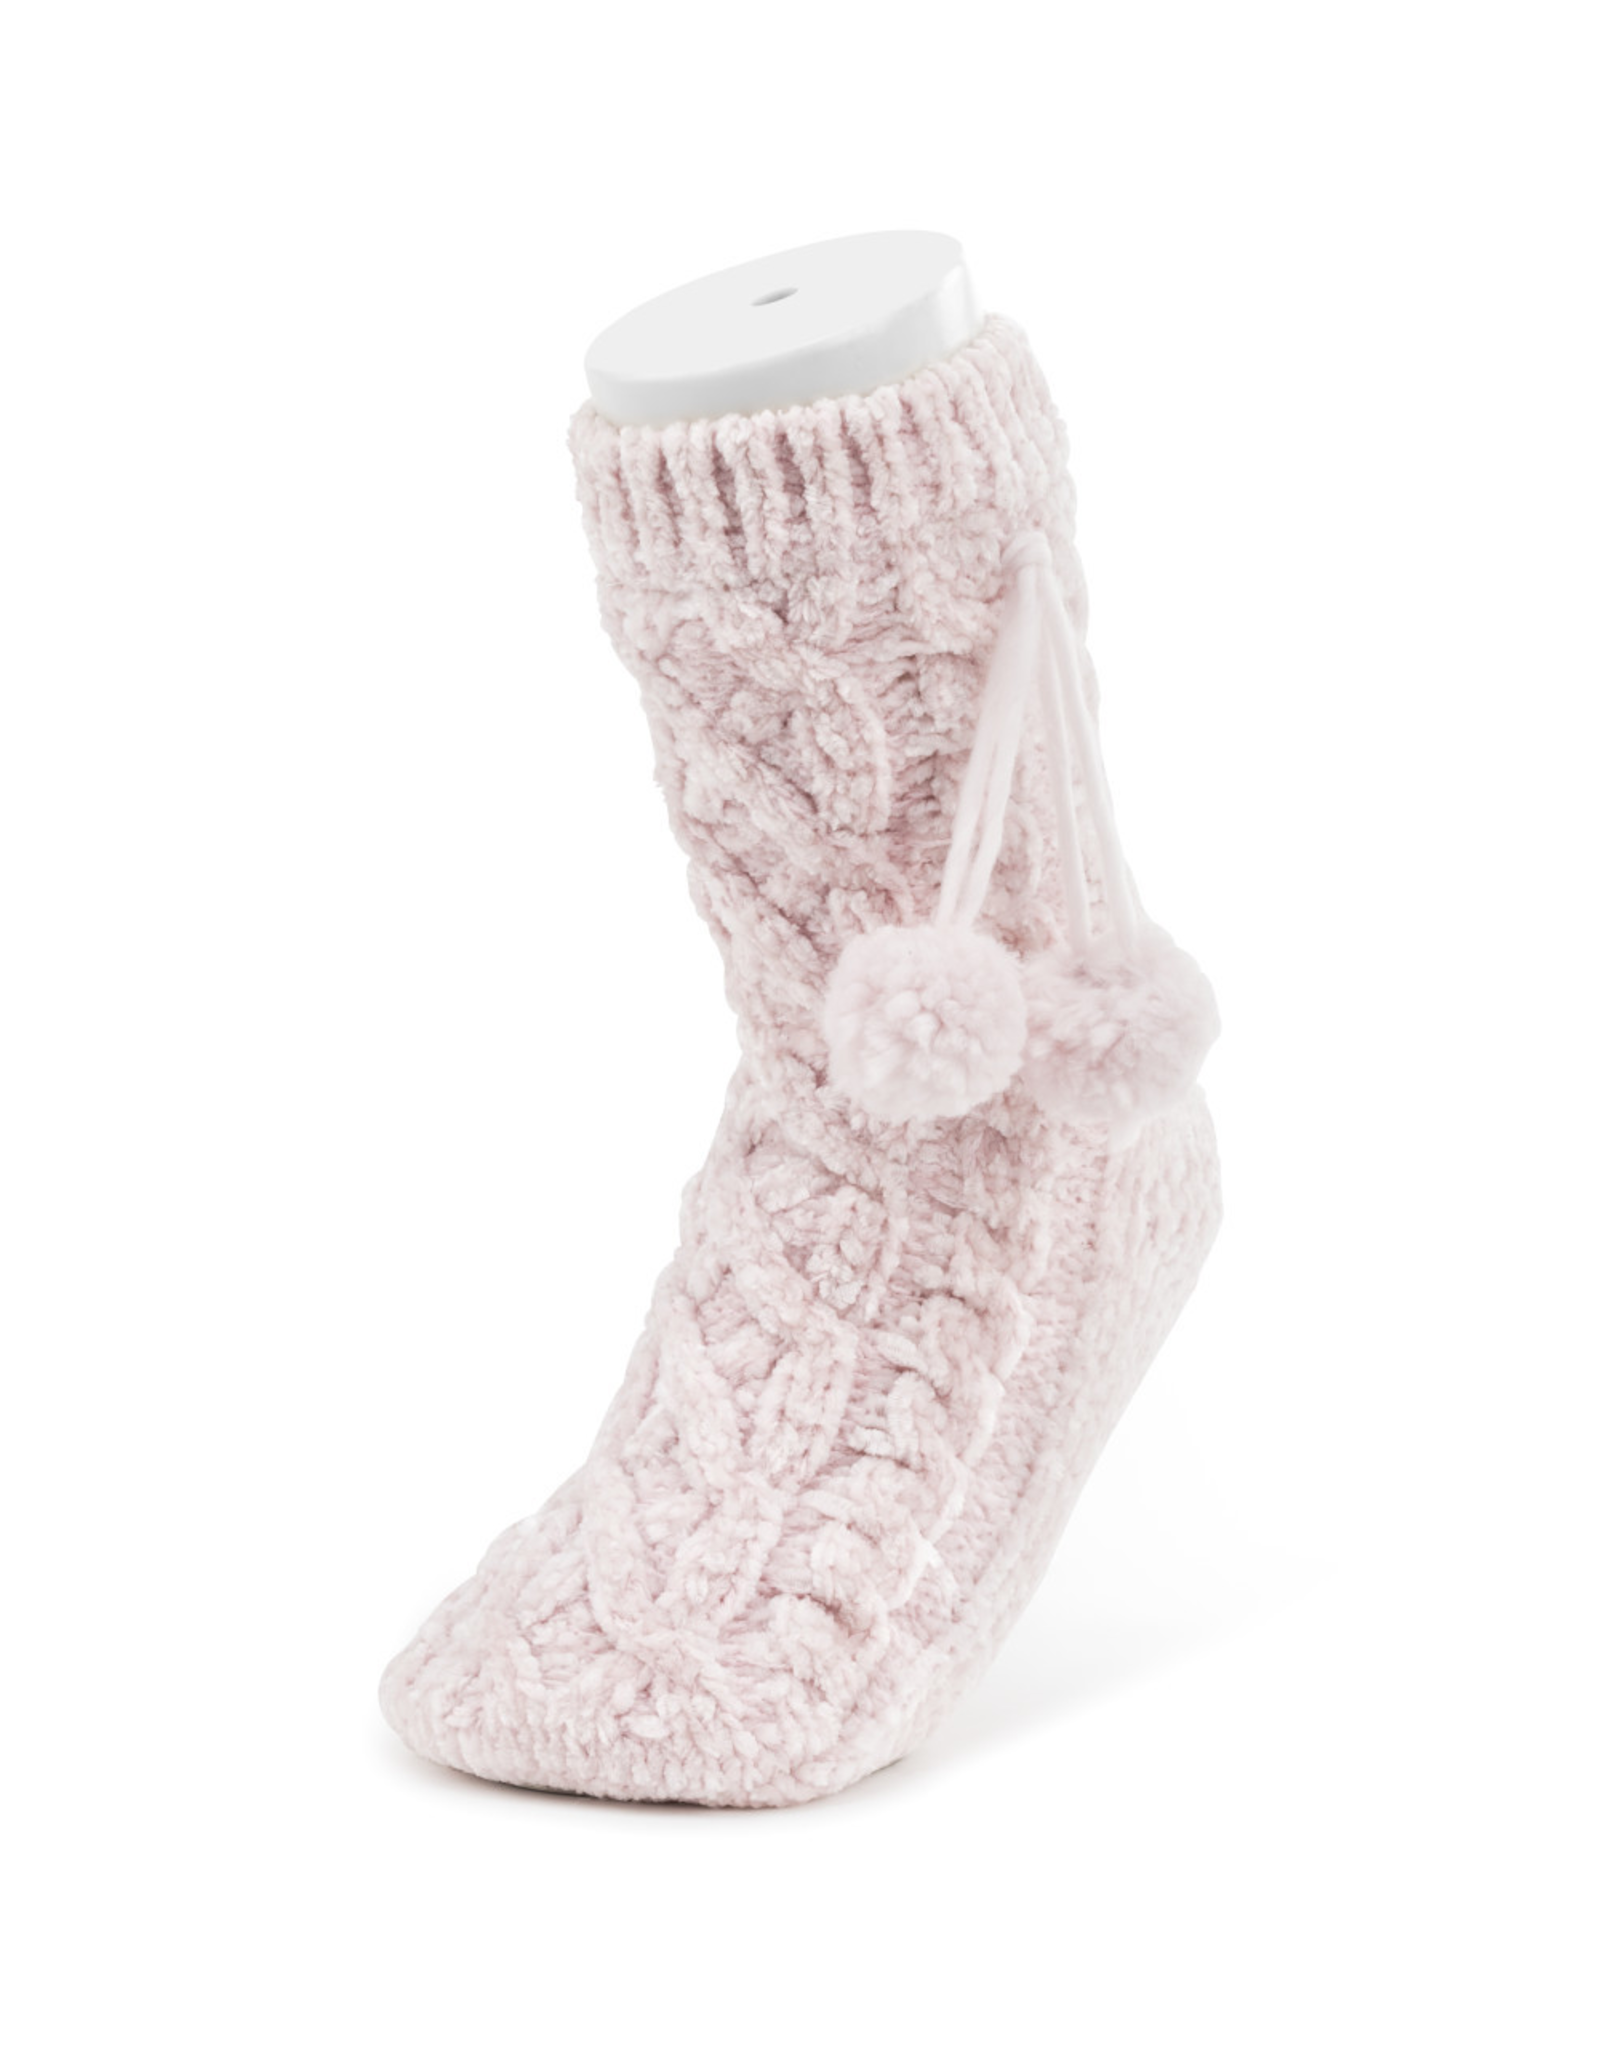 Chenille Slipper Socks - Blush